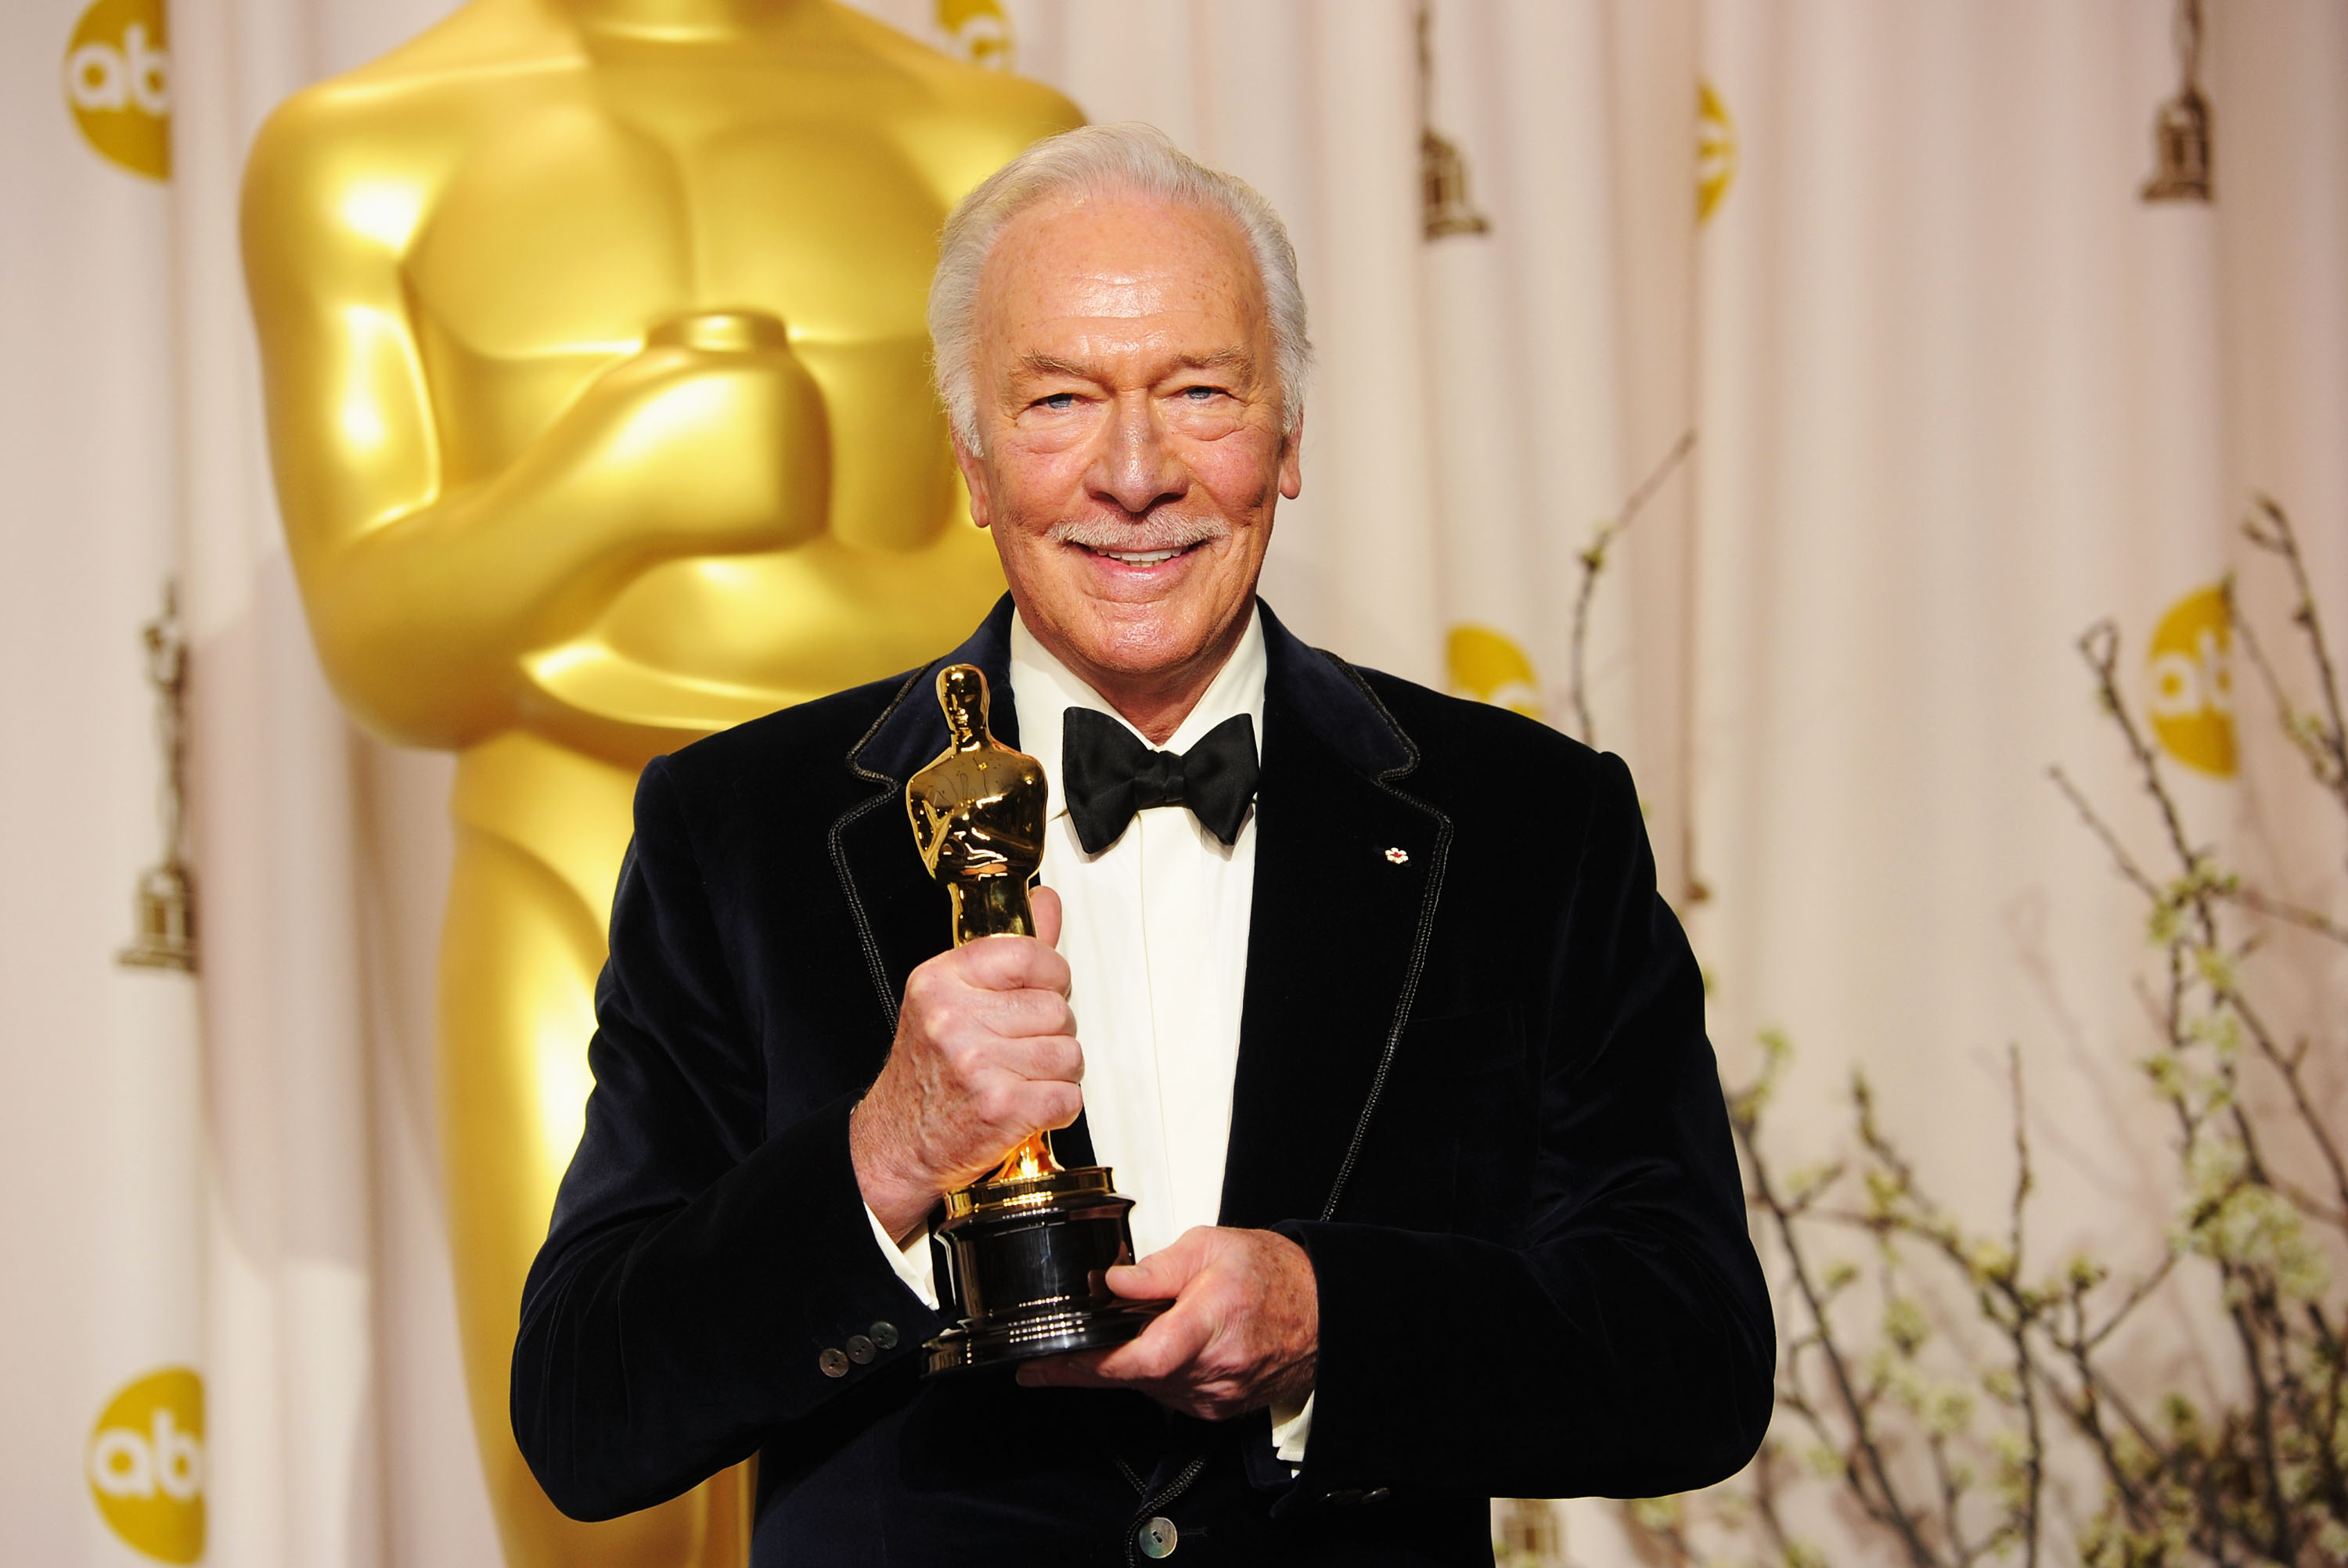 HOLLYWOOD, CA - FEBRUARY 26:  Actor  Christopher Plummer, winner of the Best Supporting Actor Award for 'Beginners,' poses in the press room at the 84th Annual Academy Awards held at the Hollywood & Highland Center on February 26, 2012 in Hollywood, California.  (Photo by Jason Merritt/Getty Images)